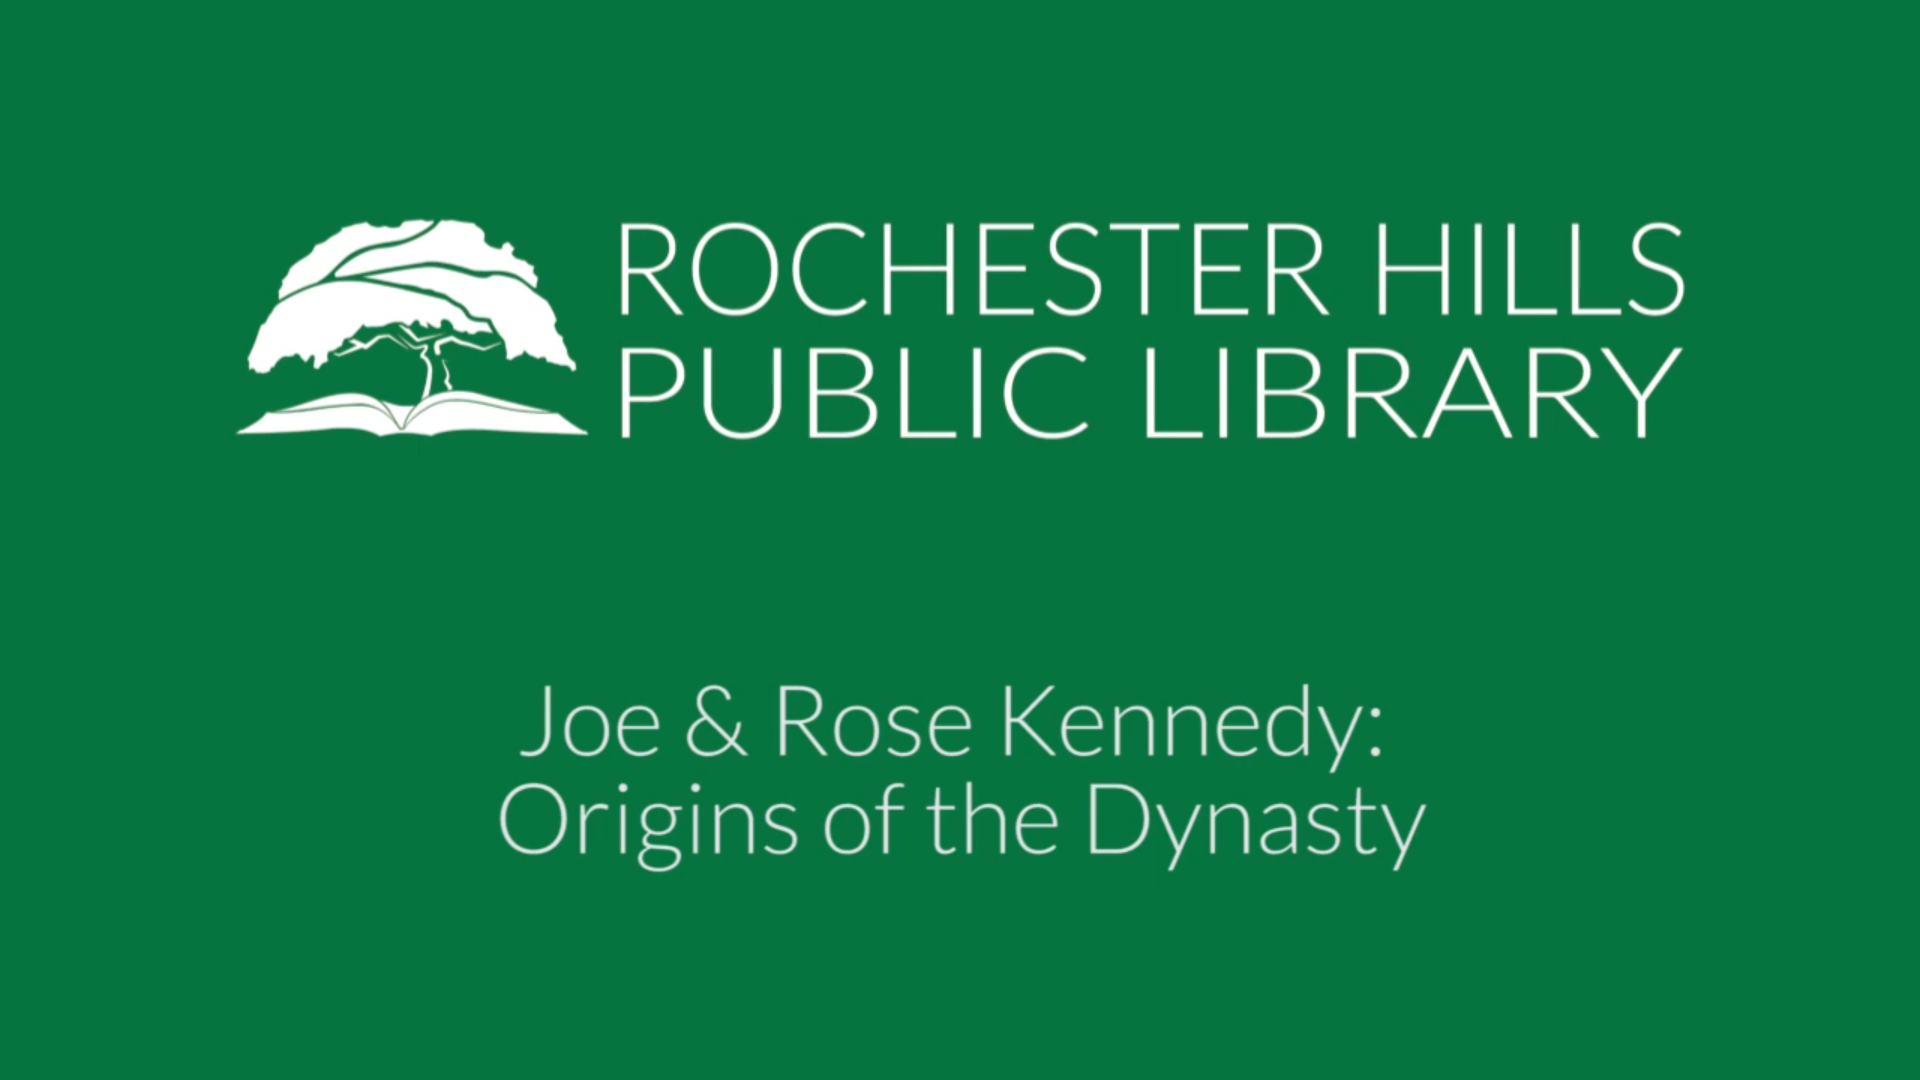 Joe & Rose Kennedy: Origins of the Dynasty